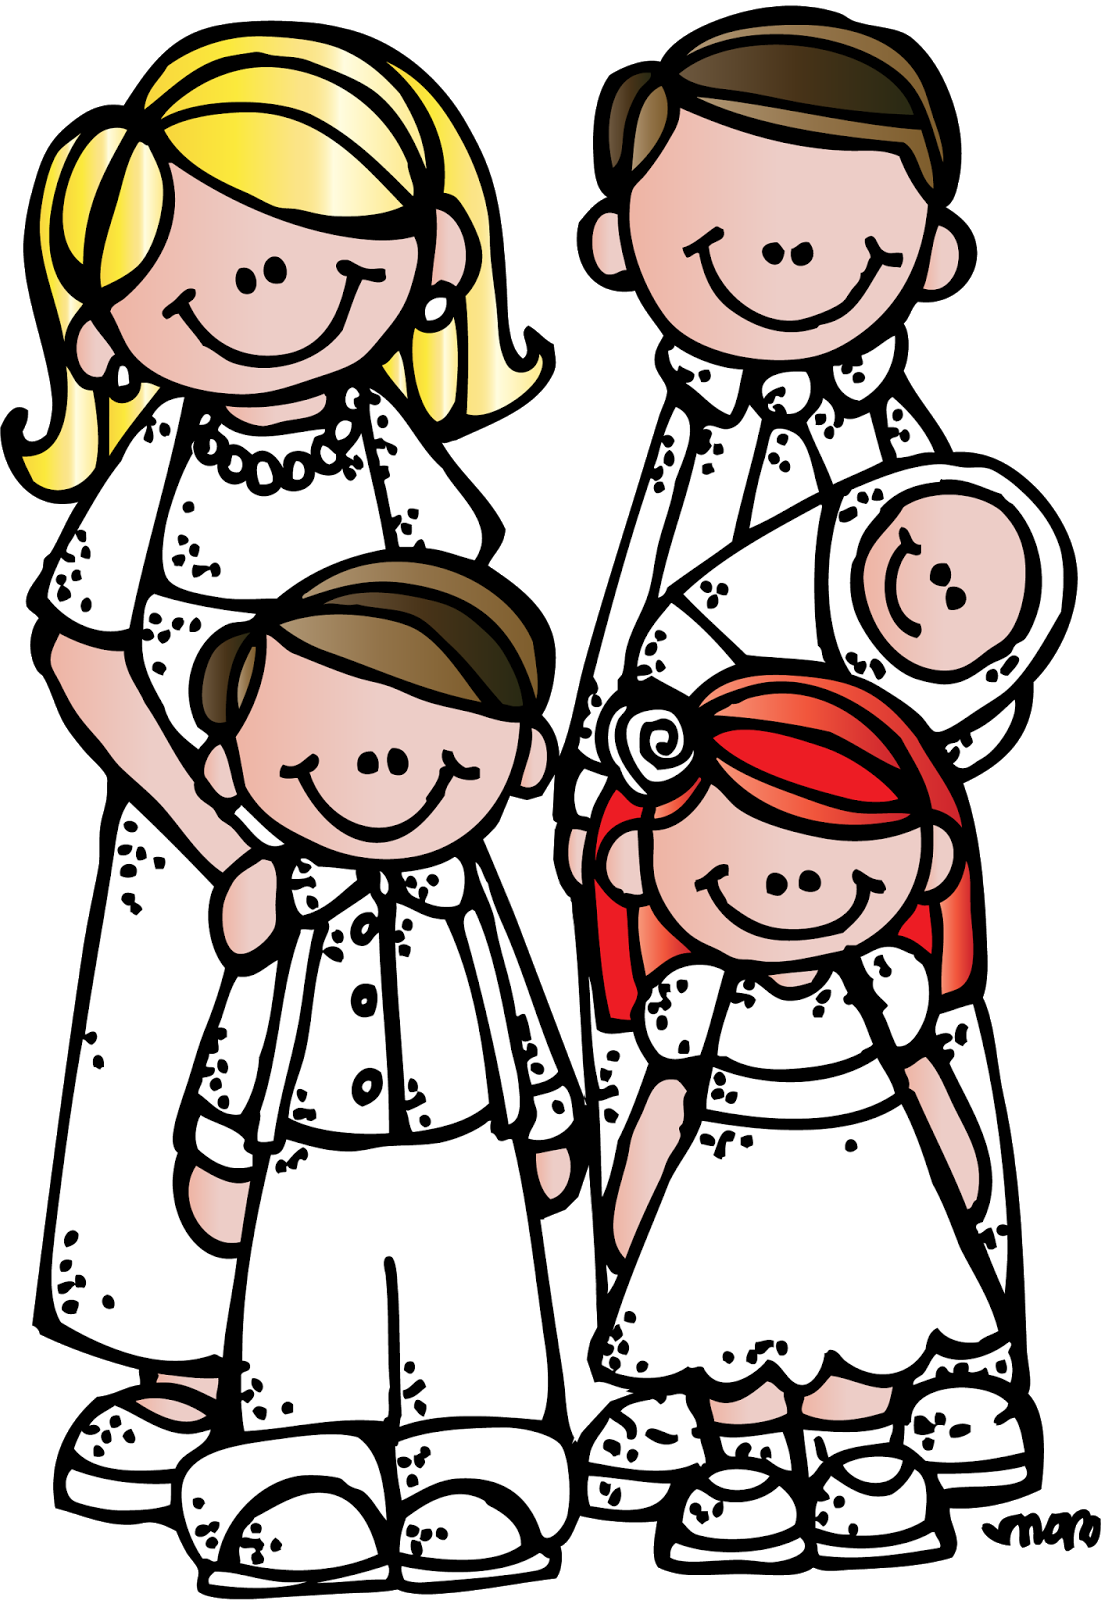 Lds vector labs ddbefefafaba. Phone clipart family